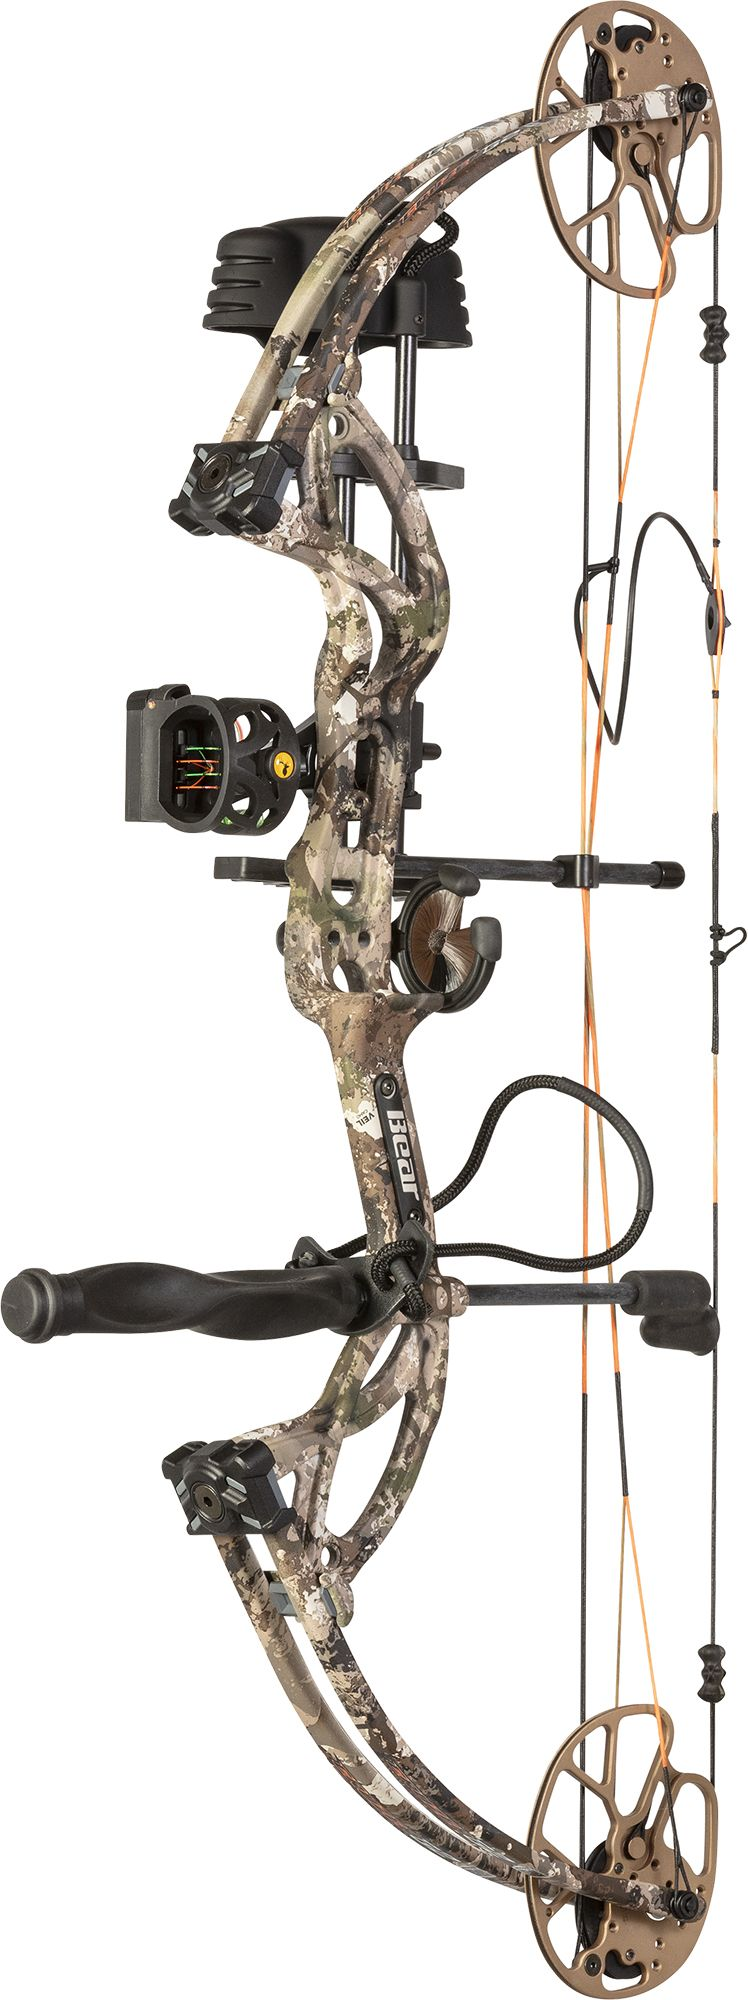 Bear Archery Cruzer G2 RTH Compound Bow Package, Right Hand, fire thumbnail